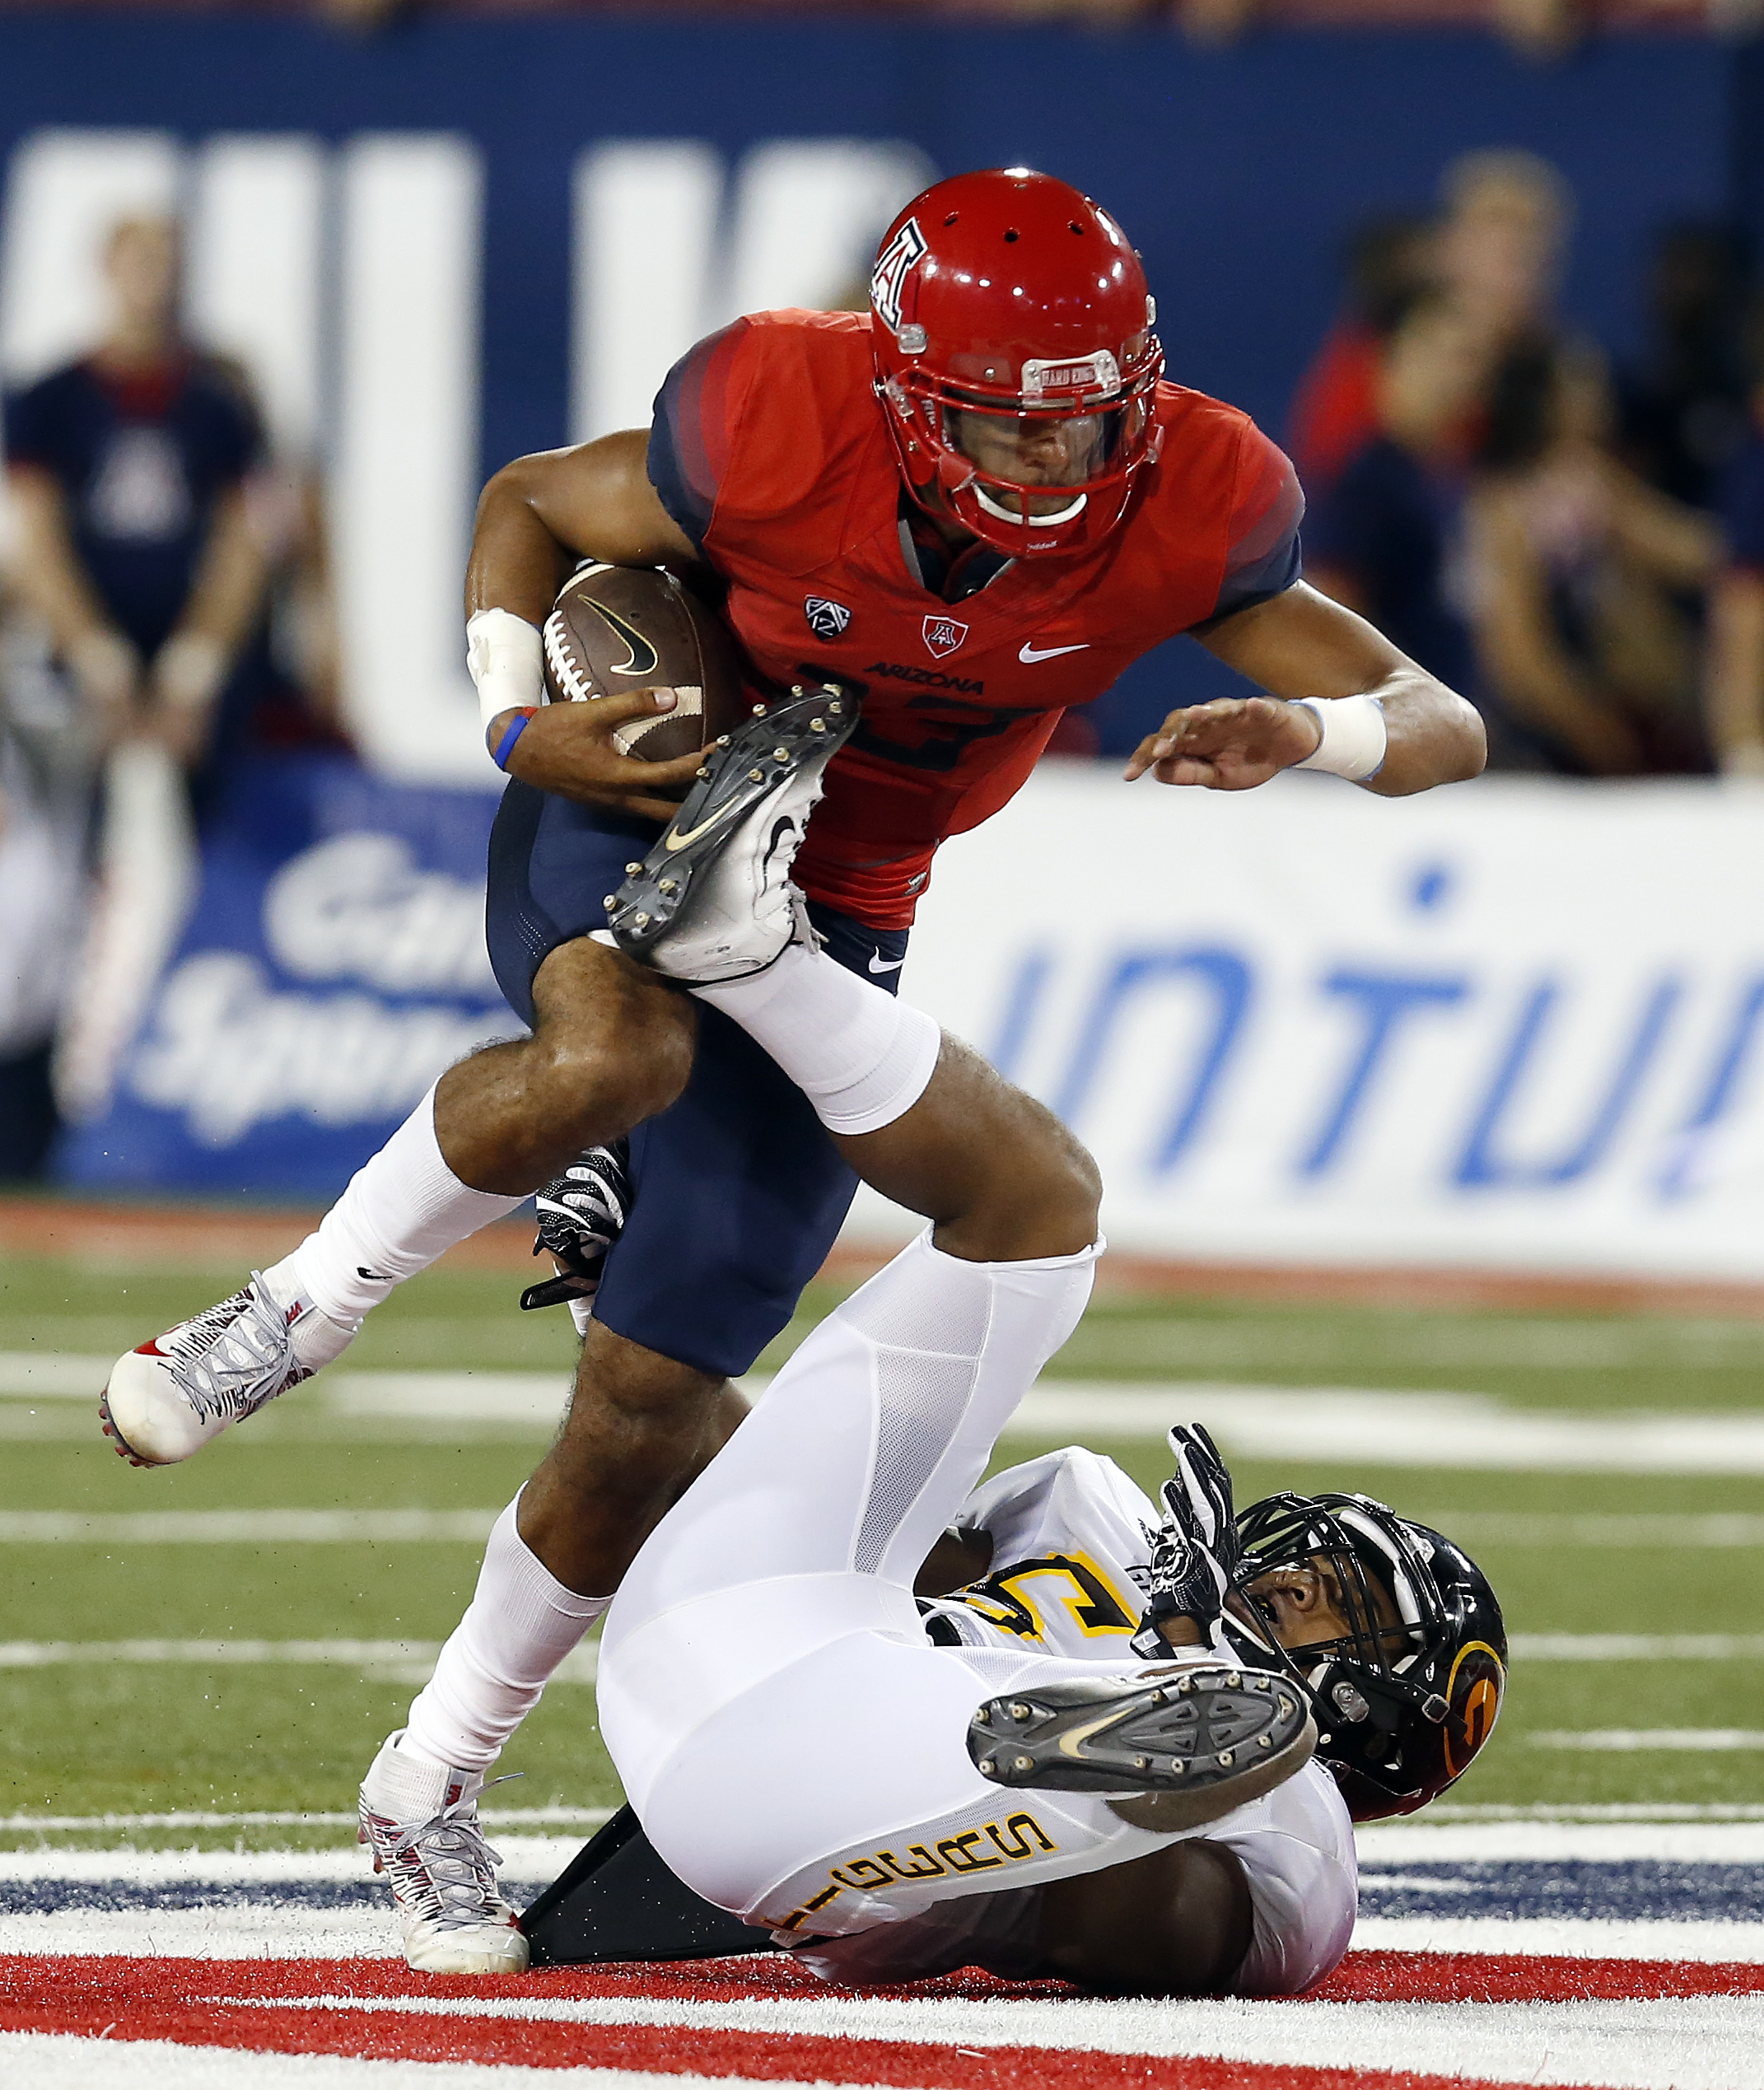 Arizona quarterback Brandon Dawkins (13) runs over Grambling State linebacker Christian Bailey (50) during the first half of an NCAA college football game, Saturday, Sept. 10, 2016, in Tucson, Ariz. (AP Photo/Rick Scuteri)